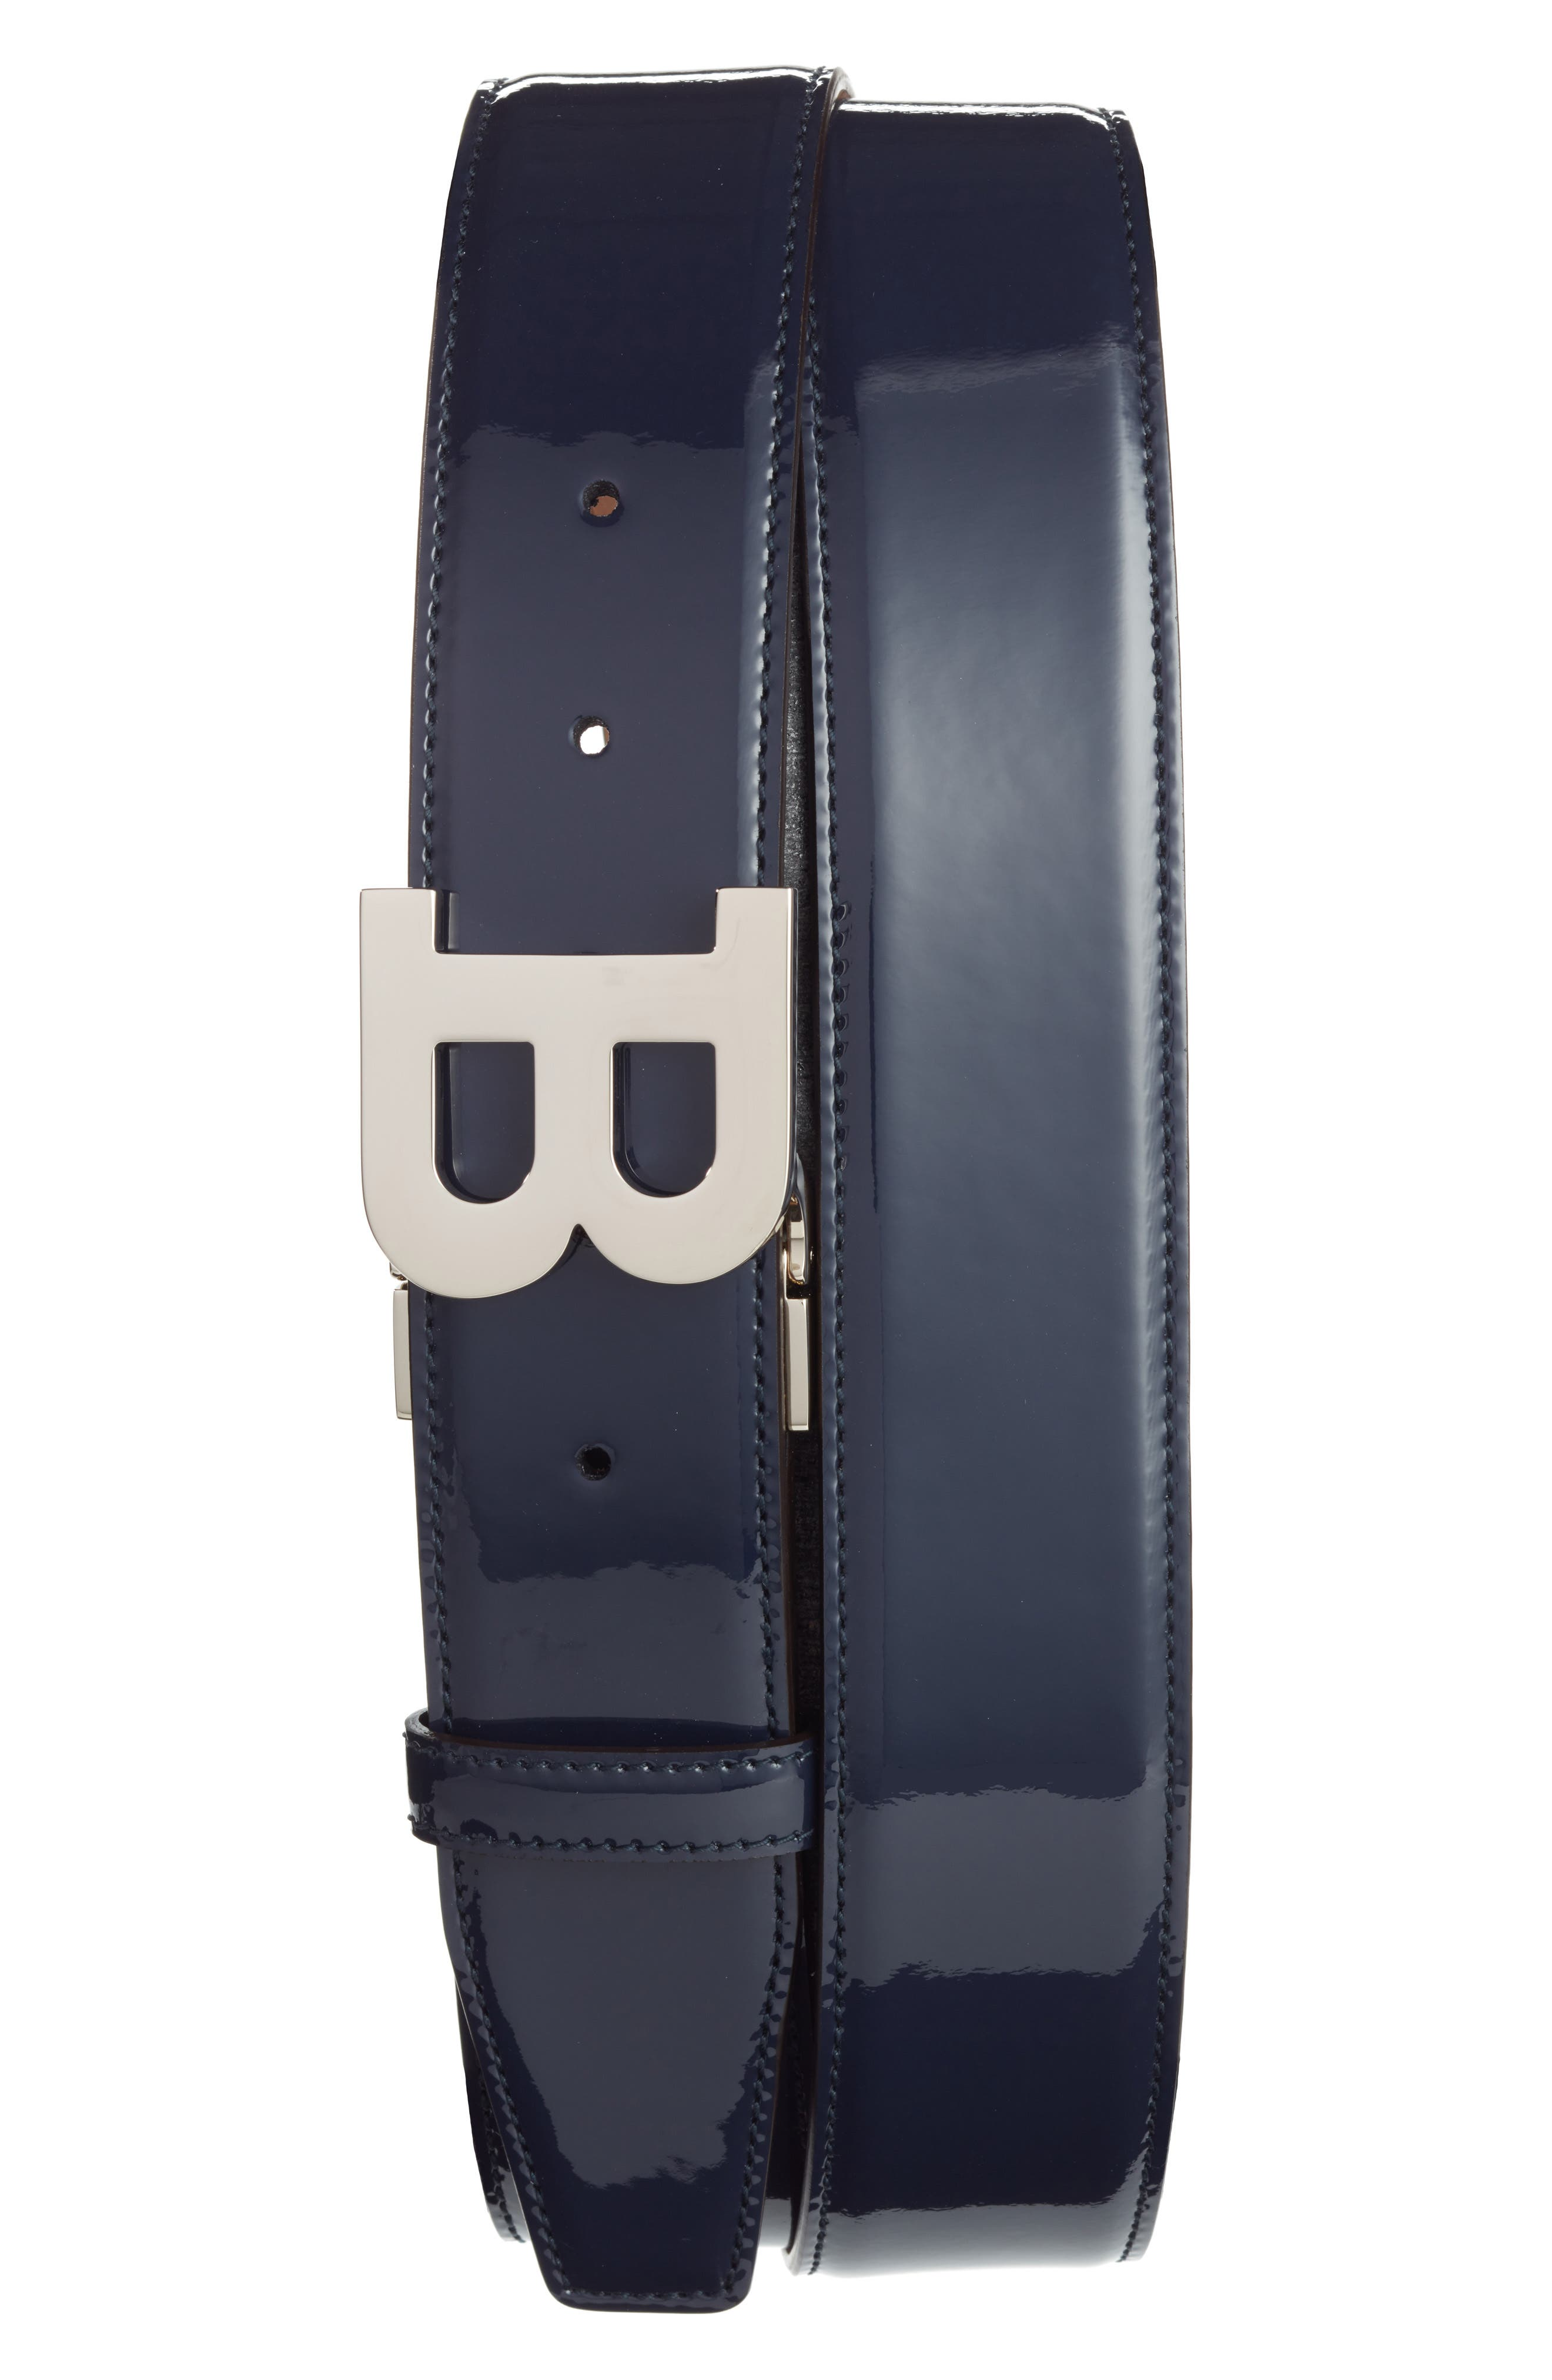 B Buckle Patent Leather Belt,                             Main thumbnail 1, color,                             Ink